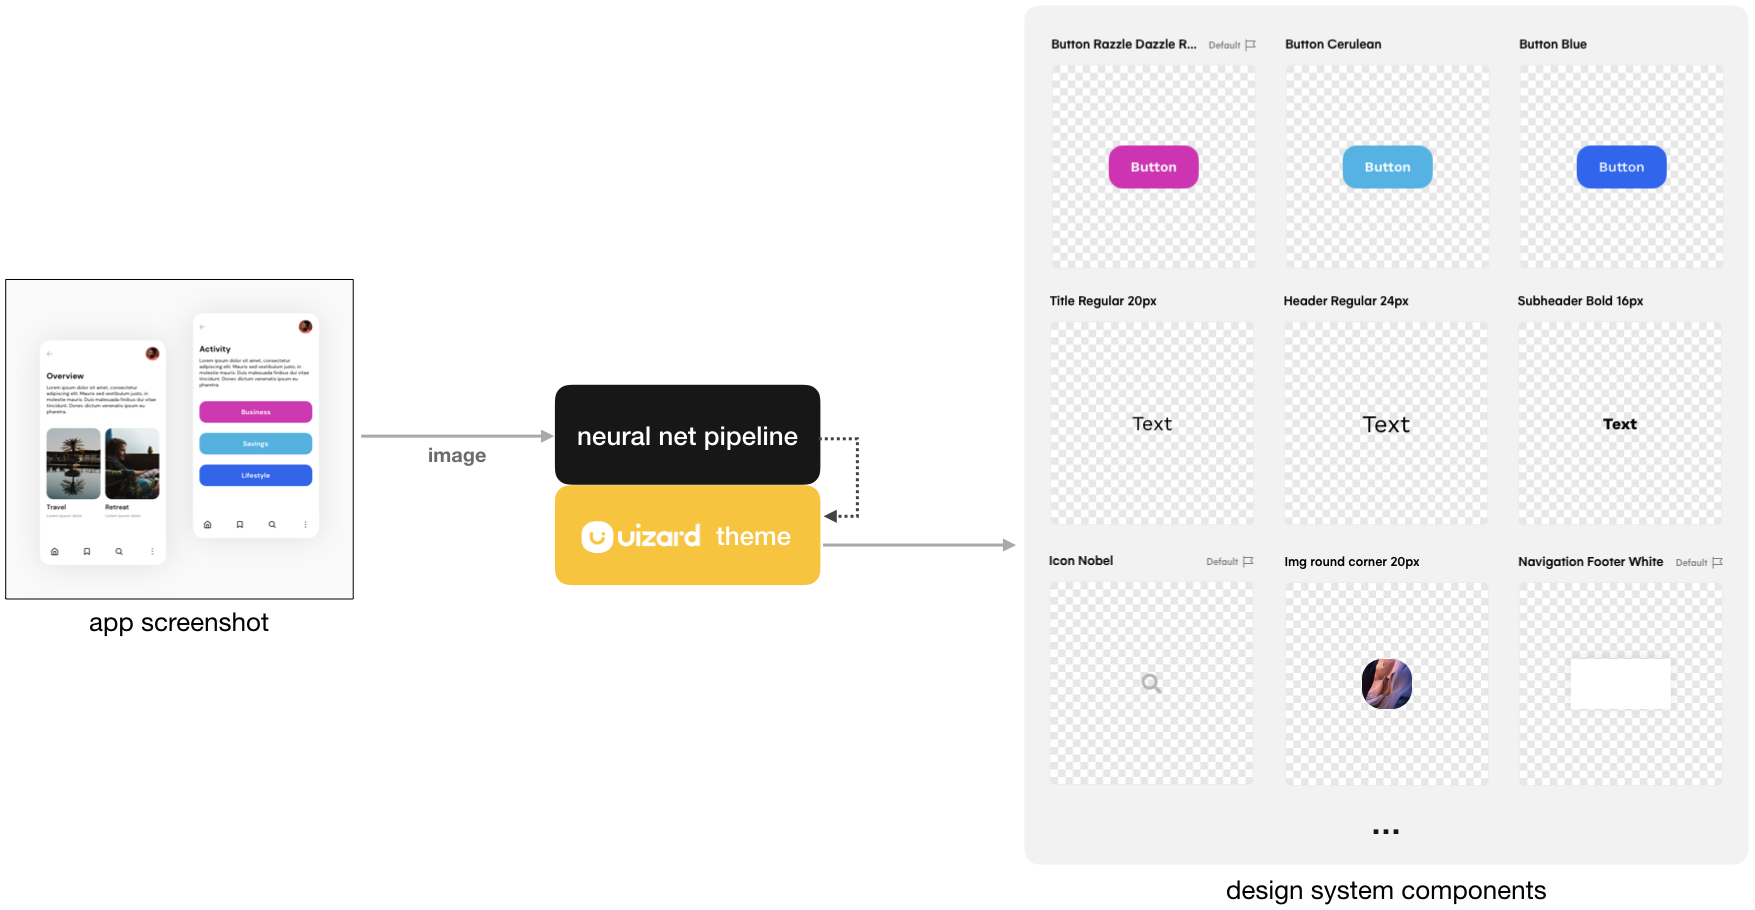 Uizard product: generating design system components from a mobile app screenshot.